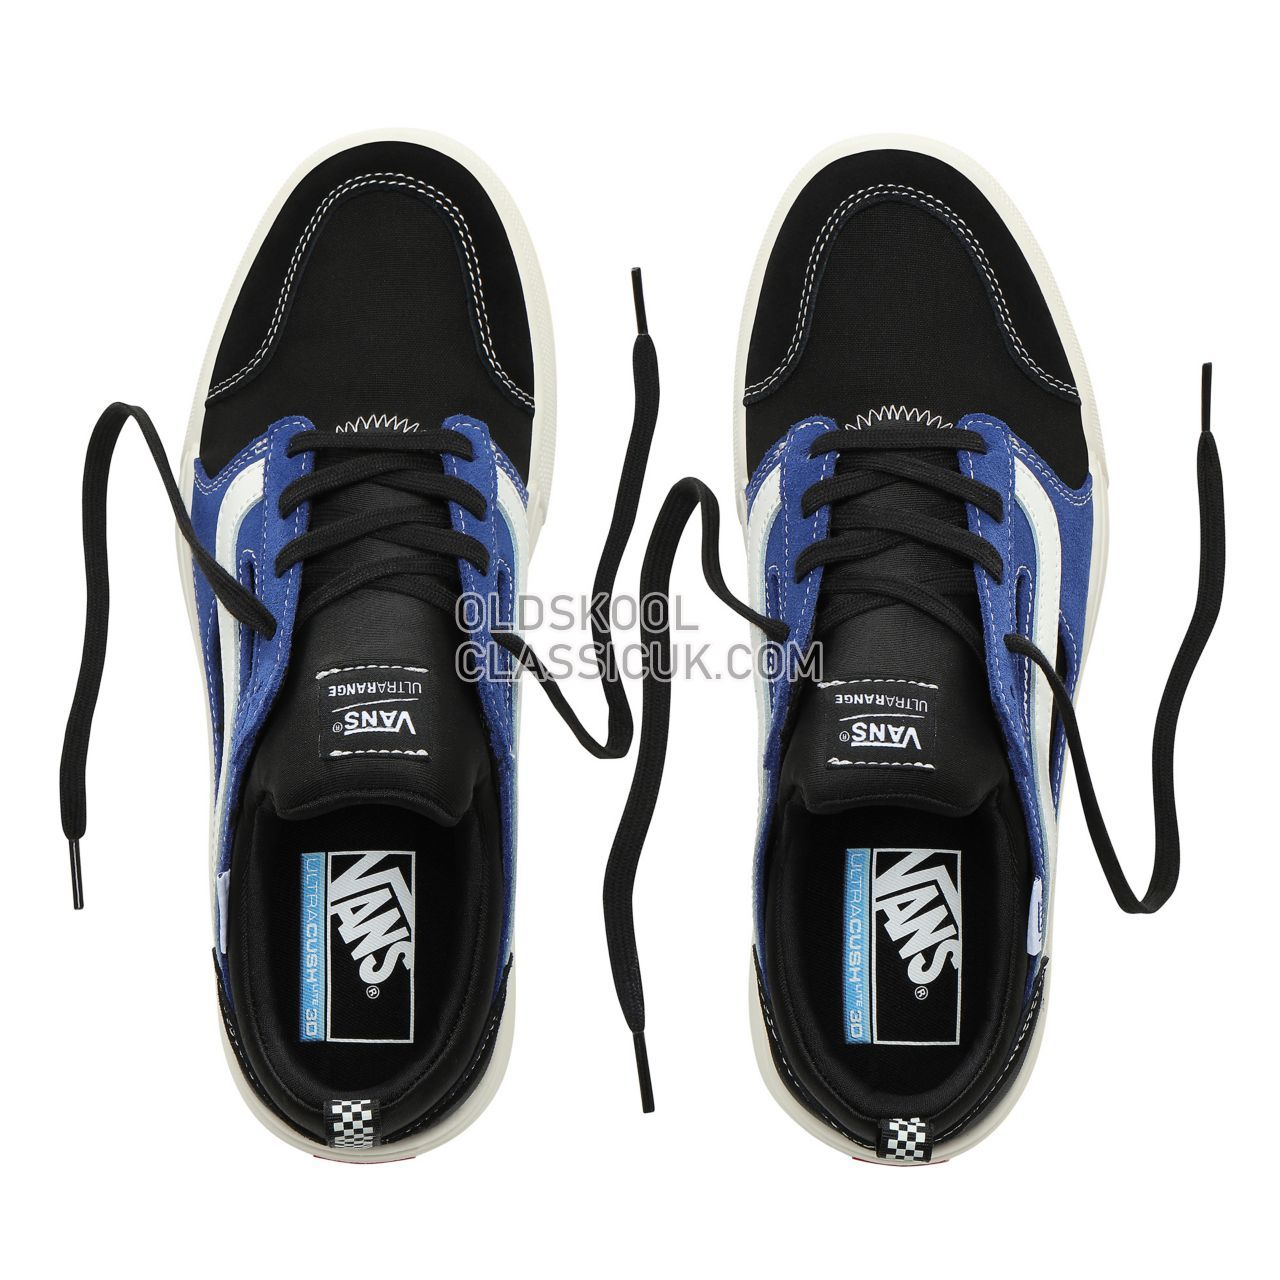 Vans Check Ultrarange 3D Sneakers Mens (Check) Black/Blue VN0A3TKW0RY Shoes